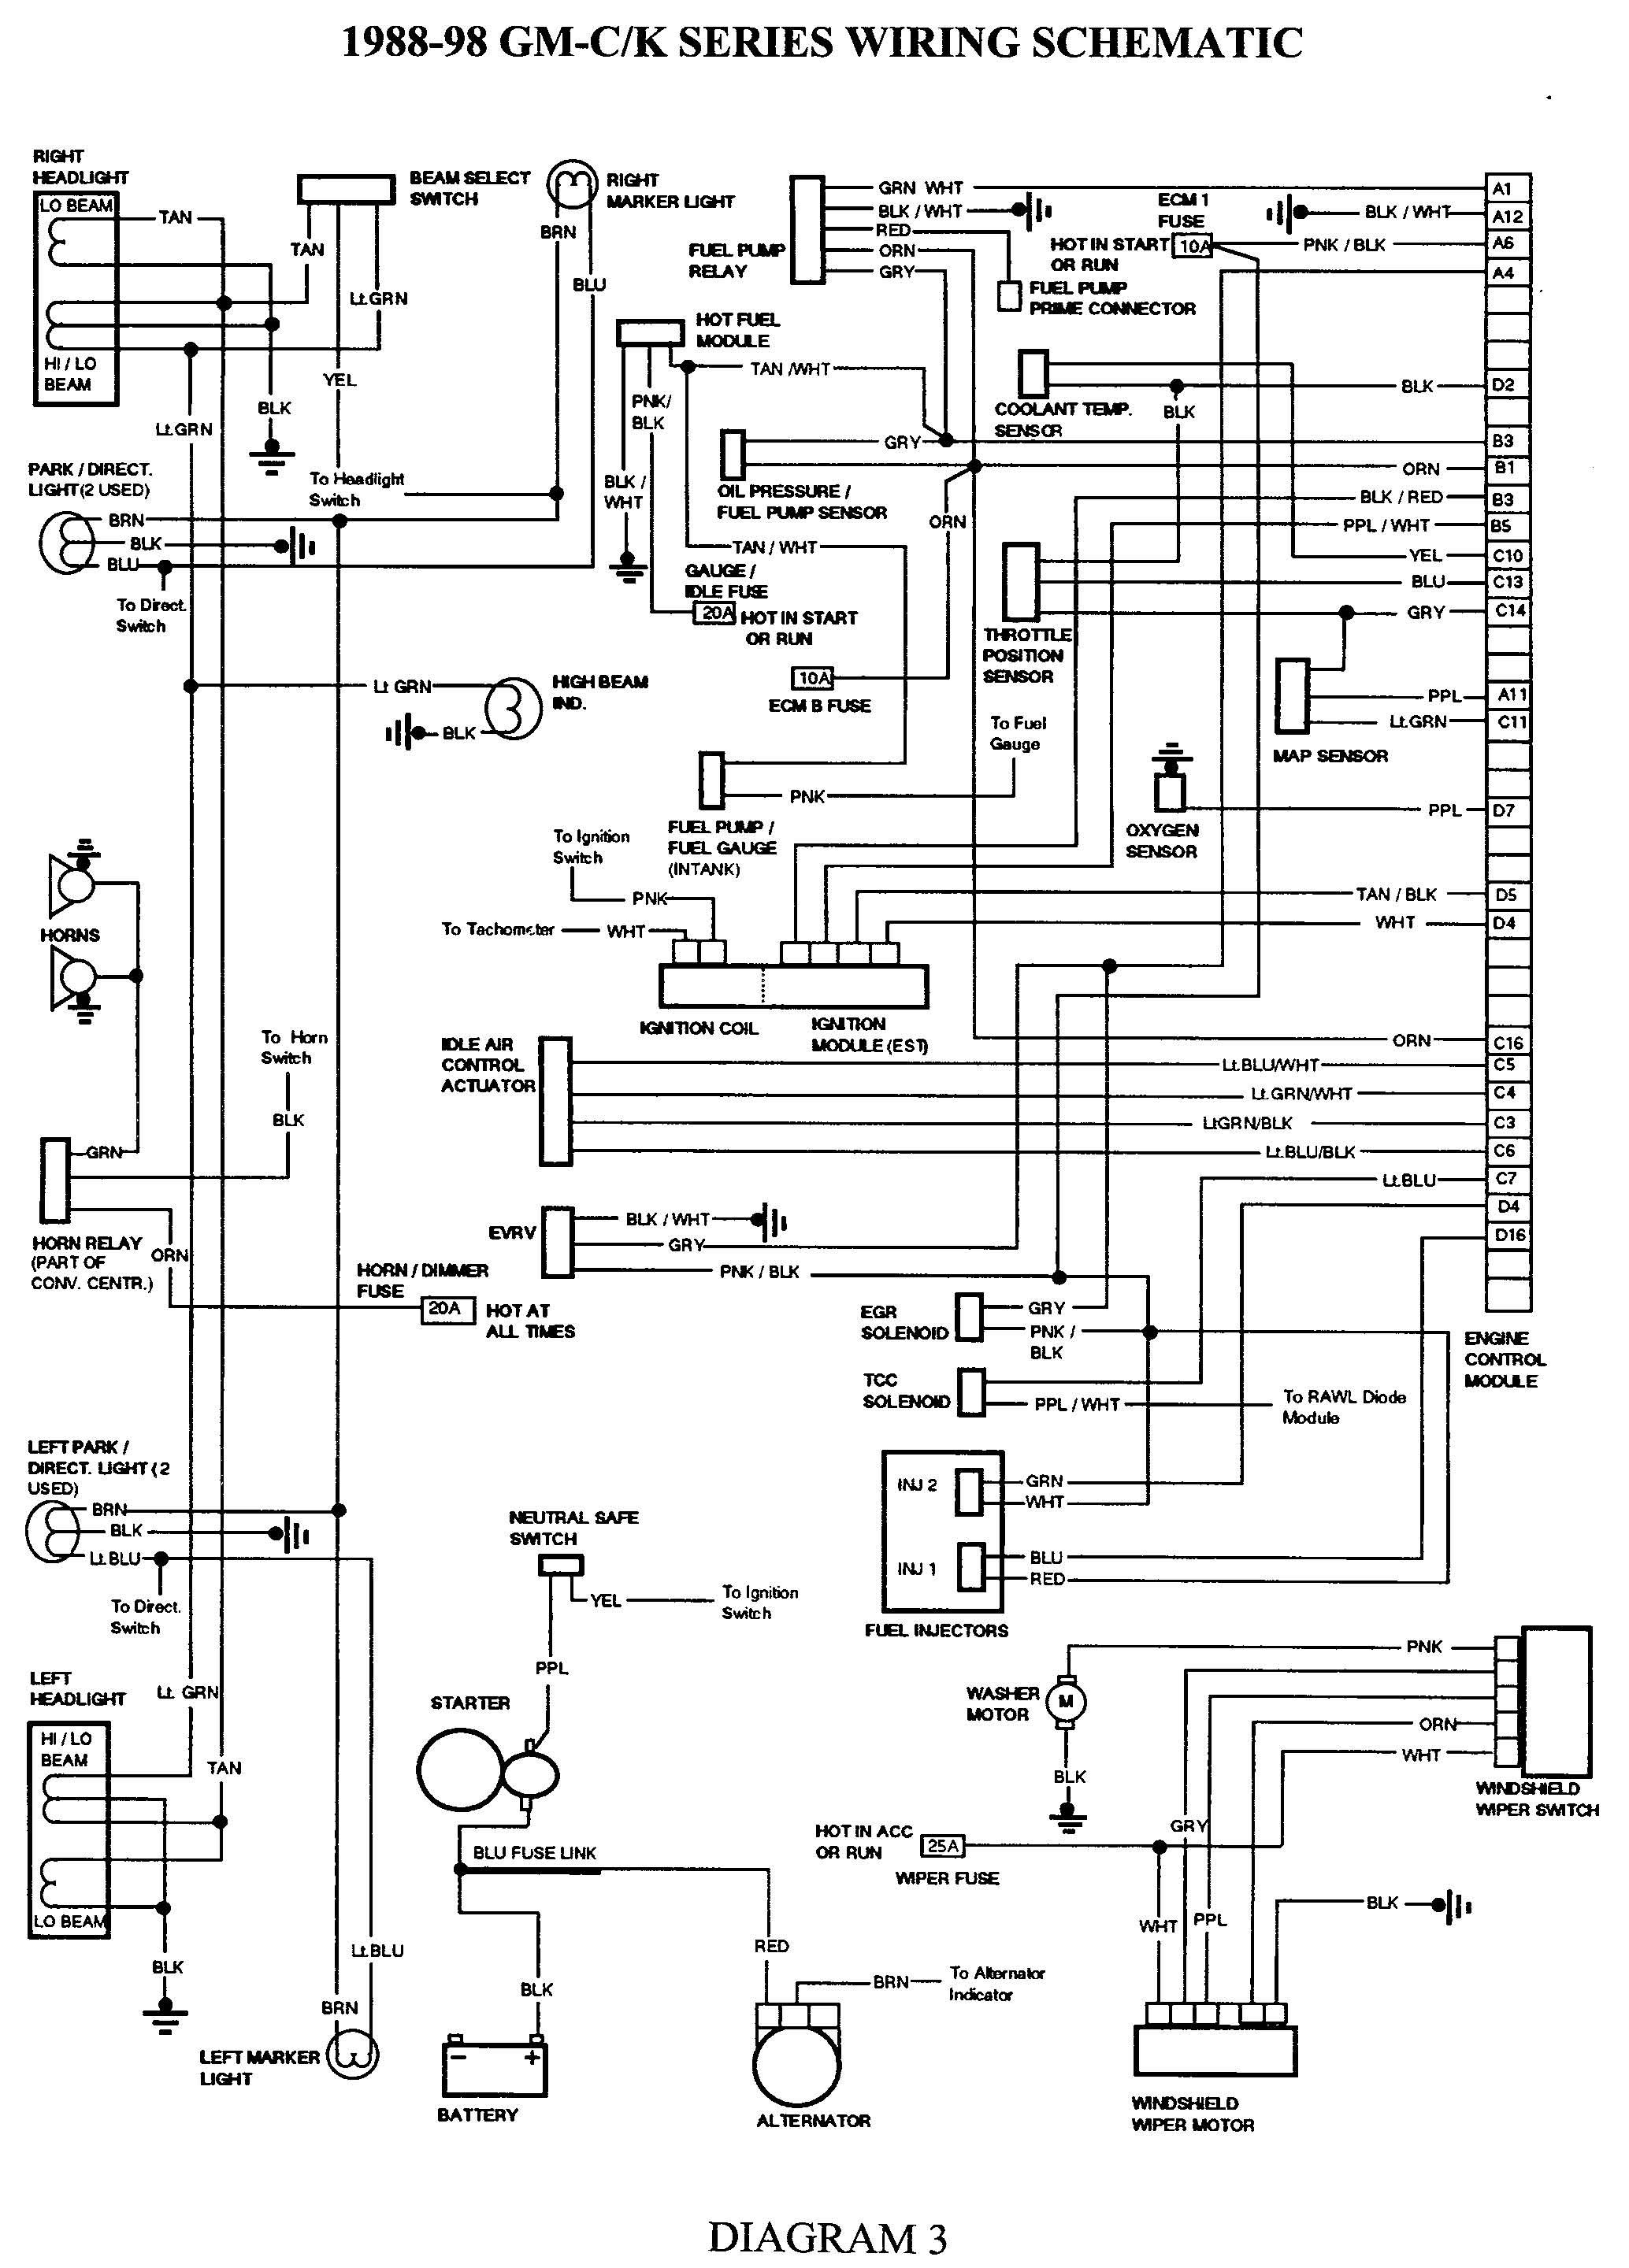 1996 chevy tahoe computer diagram trusted wiring diagram \u2022 88 chevy 2500 headlight wiring diagram gmc truck wiring diagrams on gm wiring harness diagram 88 98 kc rh pinterest com 1999 tahoe speaker wiring diagram 1999 tahoe speaker wiring diagram